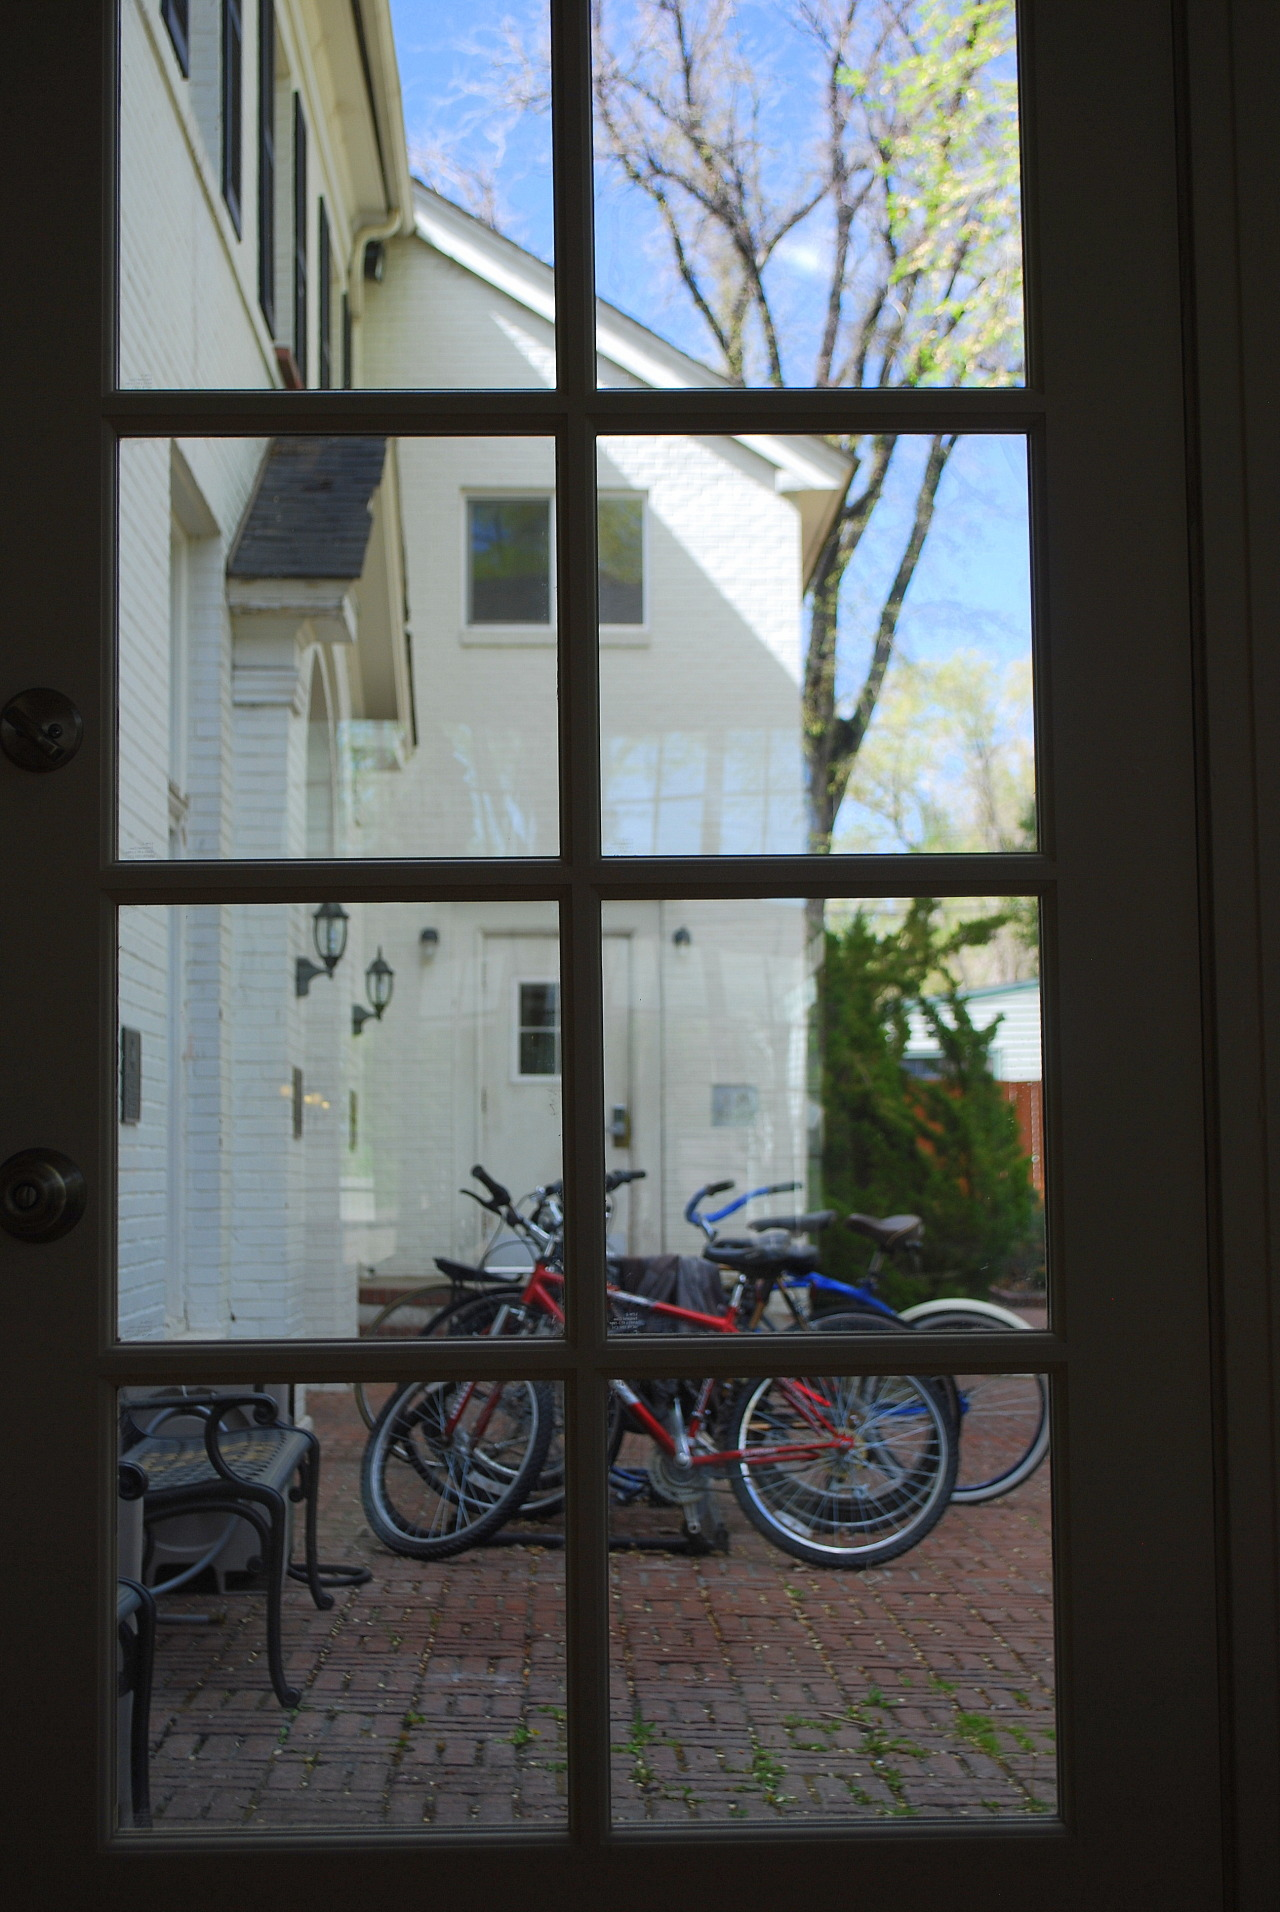 the bike in the window